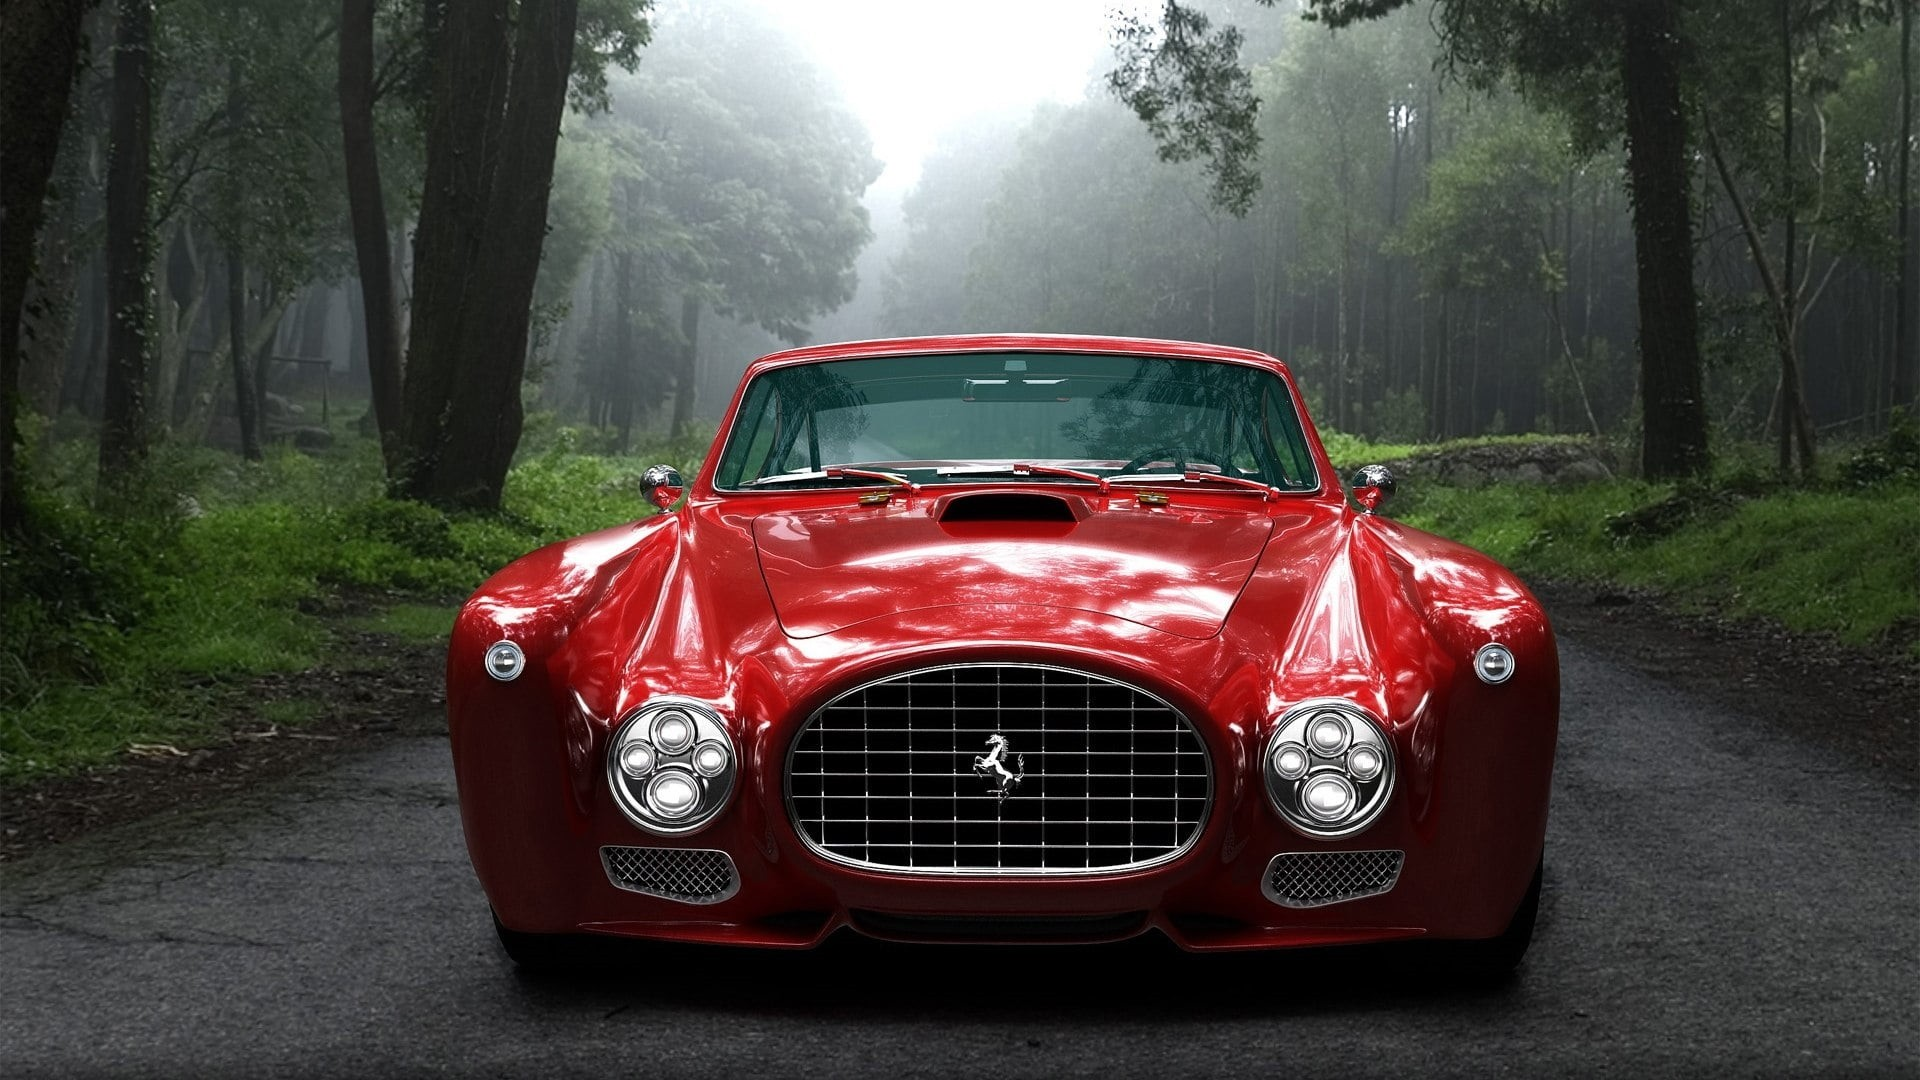 Classic Car Wallpaper and Background